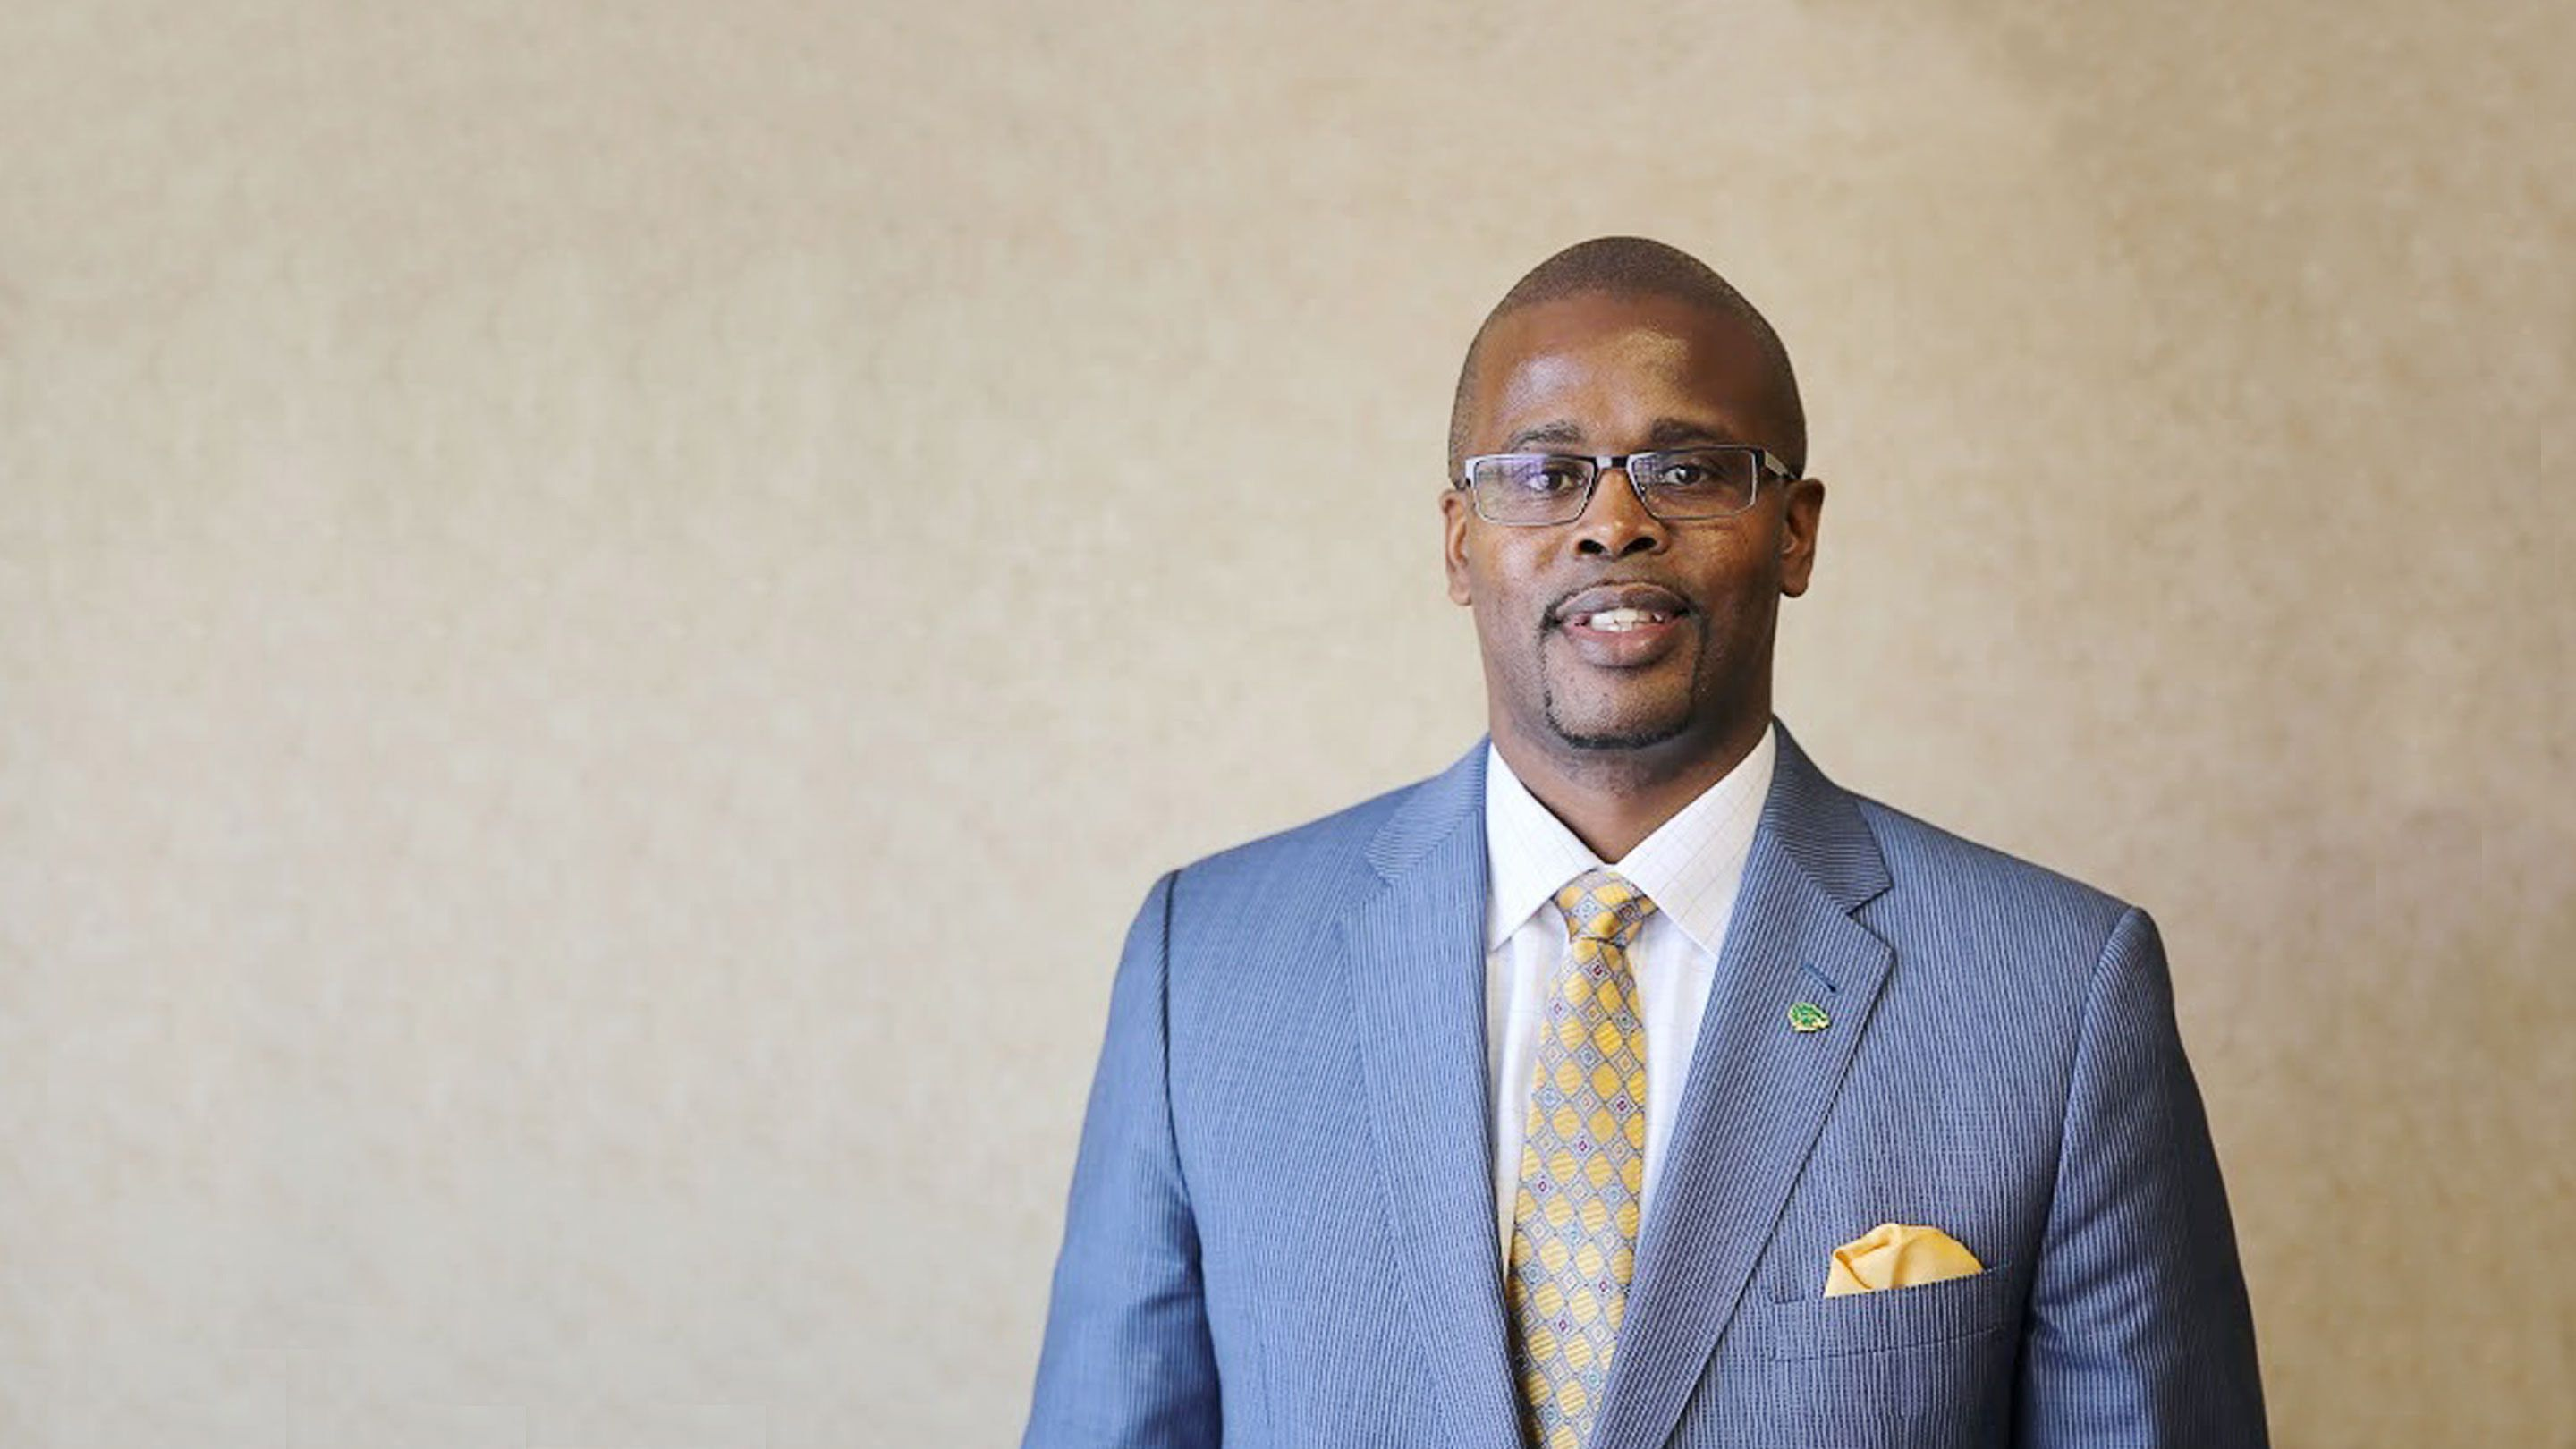 Photo of Antwan Wilson, a black male educator smiling in a suit.